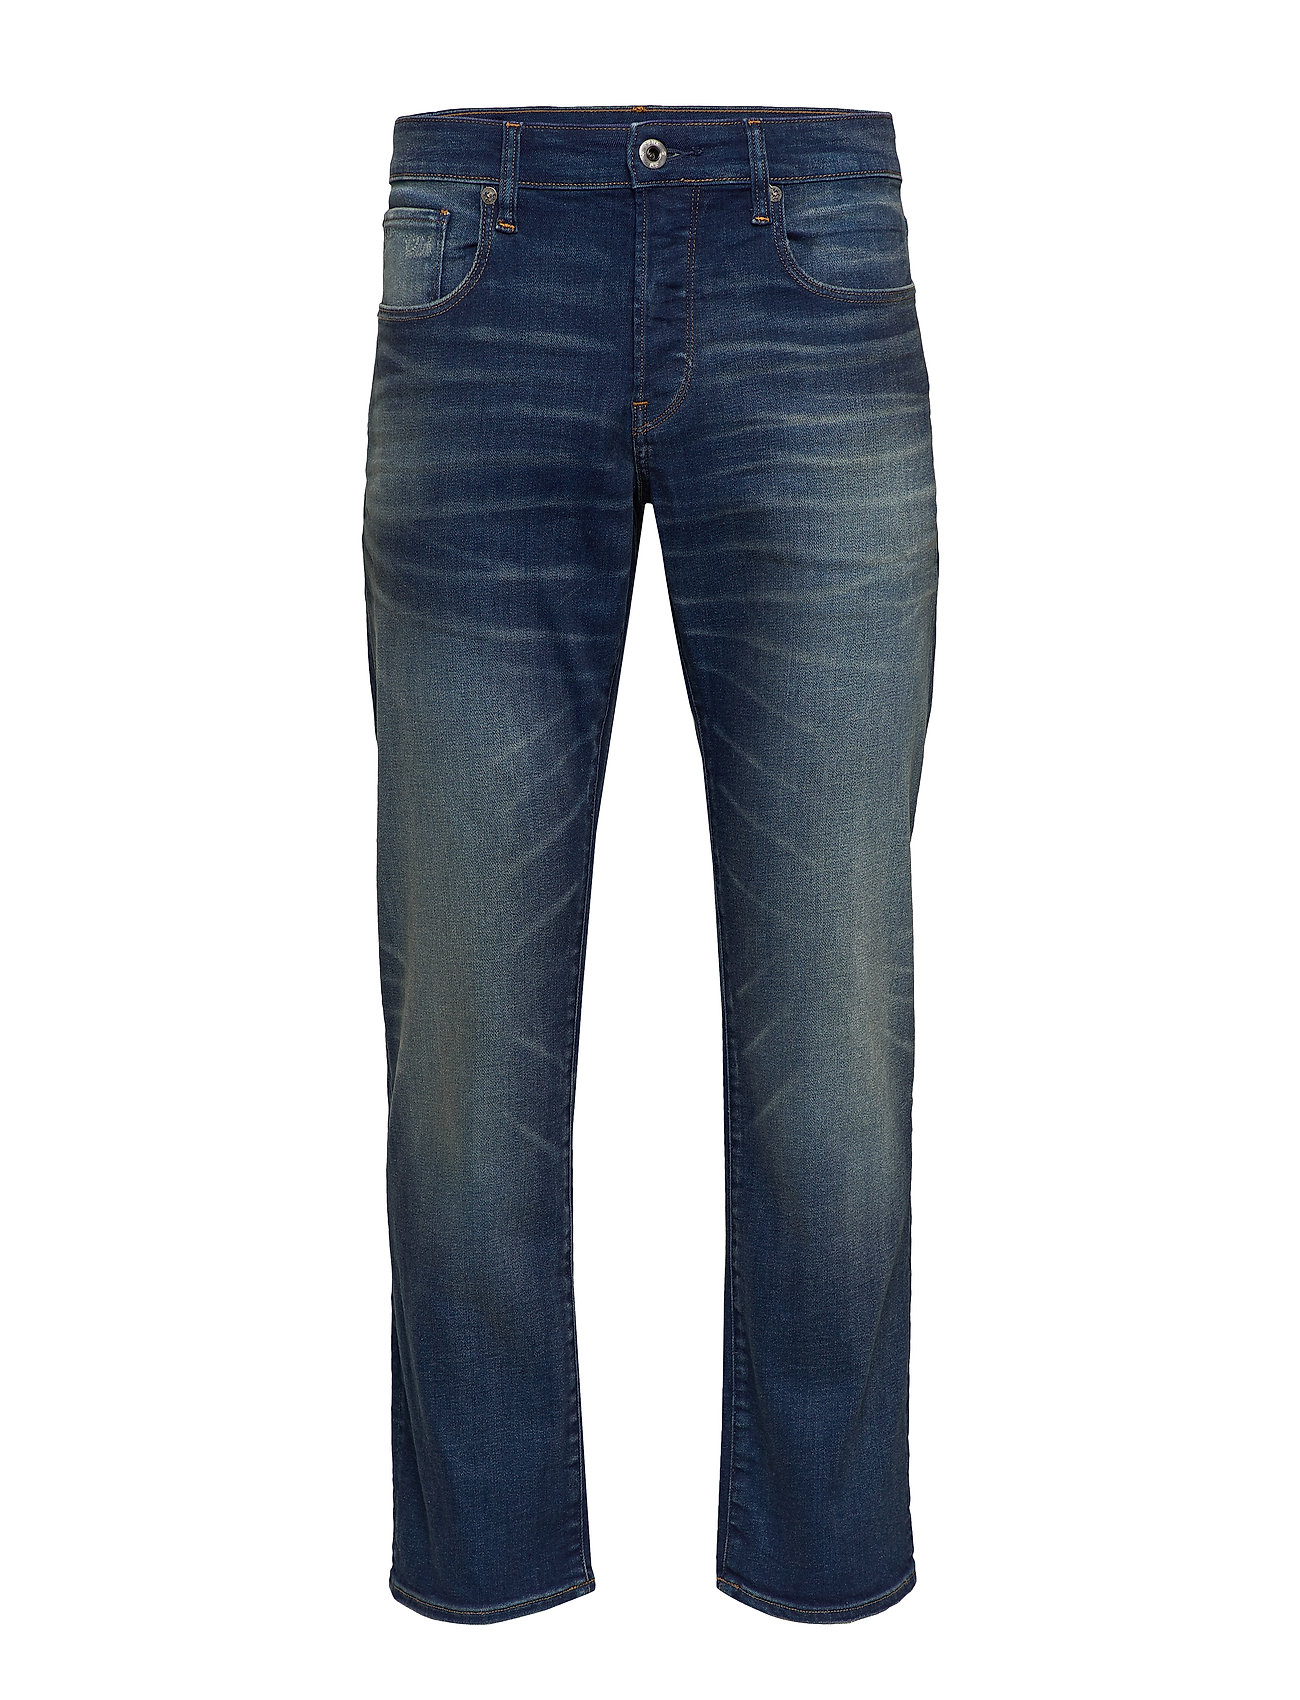 G-star RAW 3301 Straight - WORKER BLUE FADED